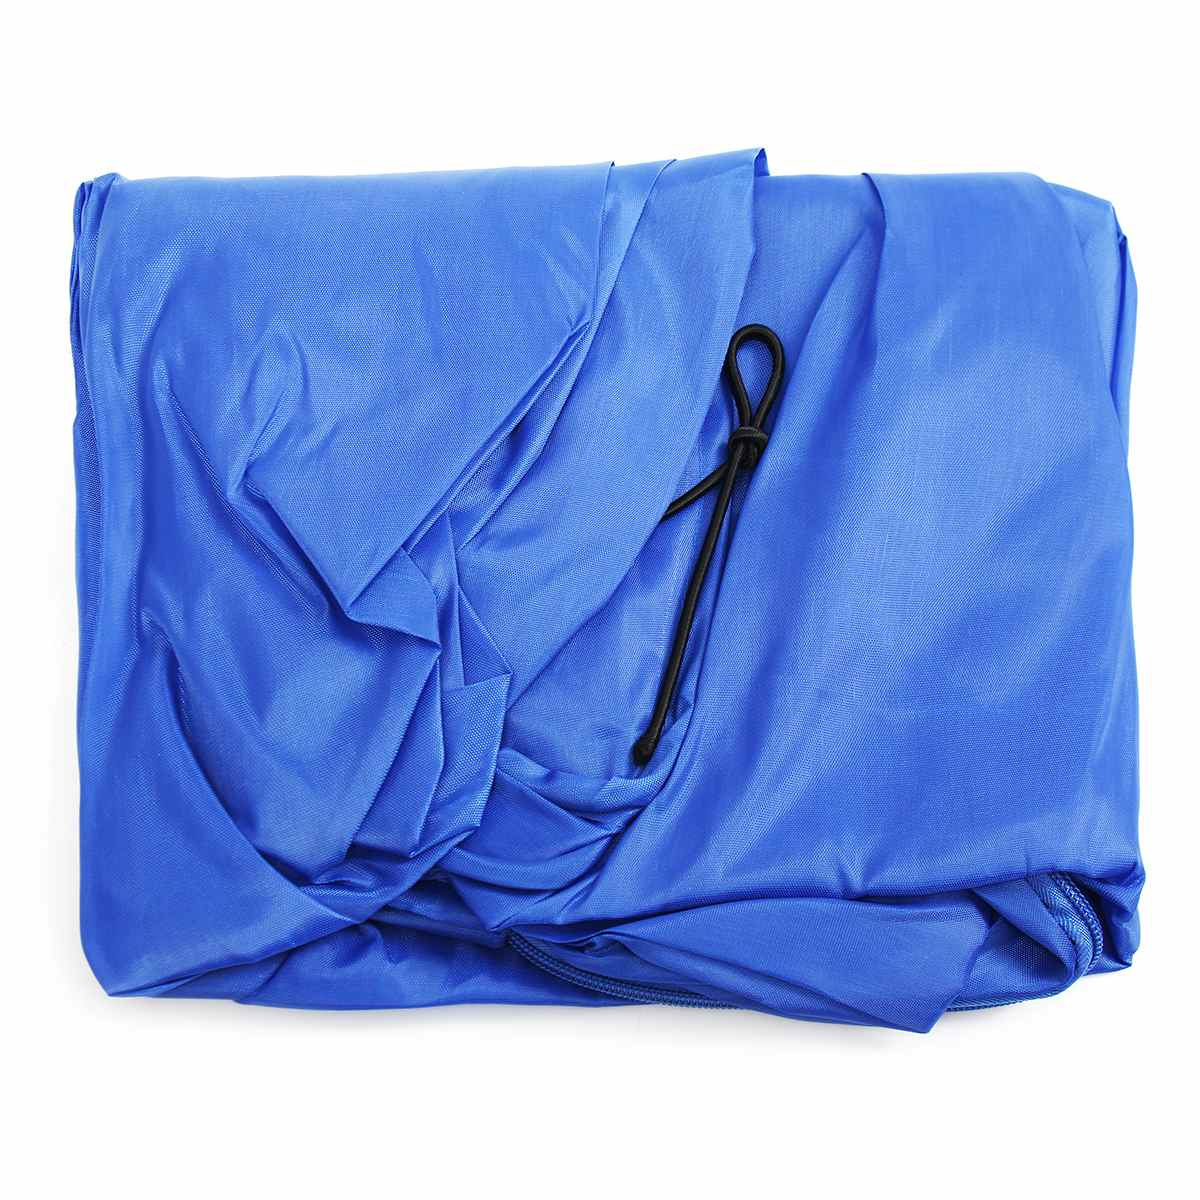 60-150HP Boat Engine Cover